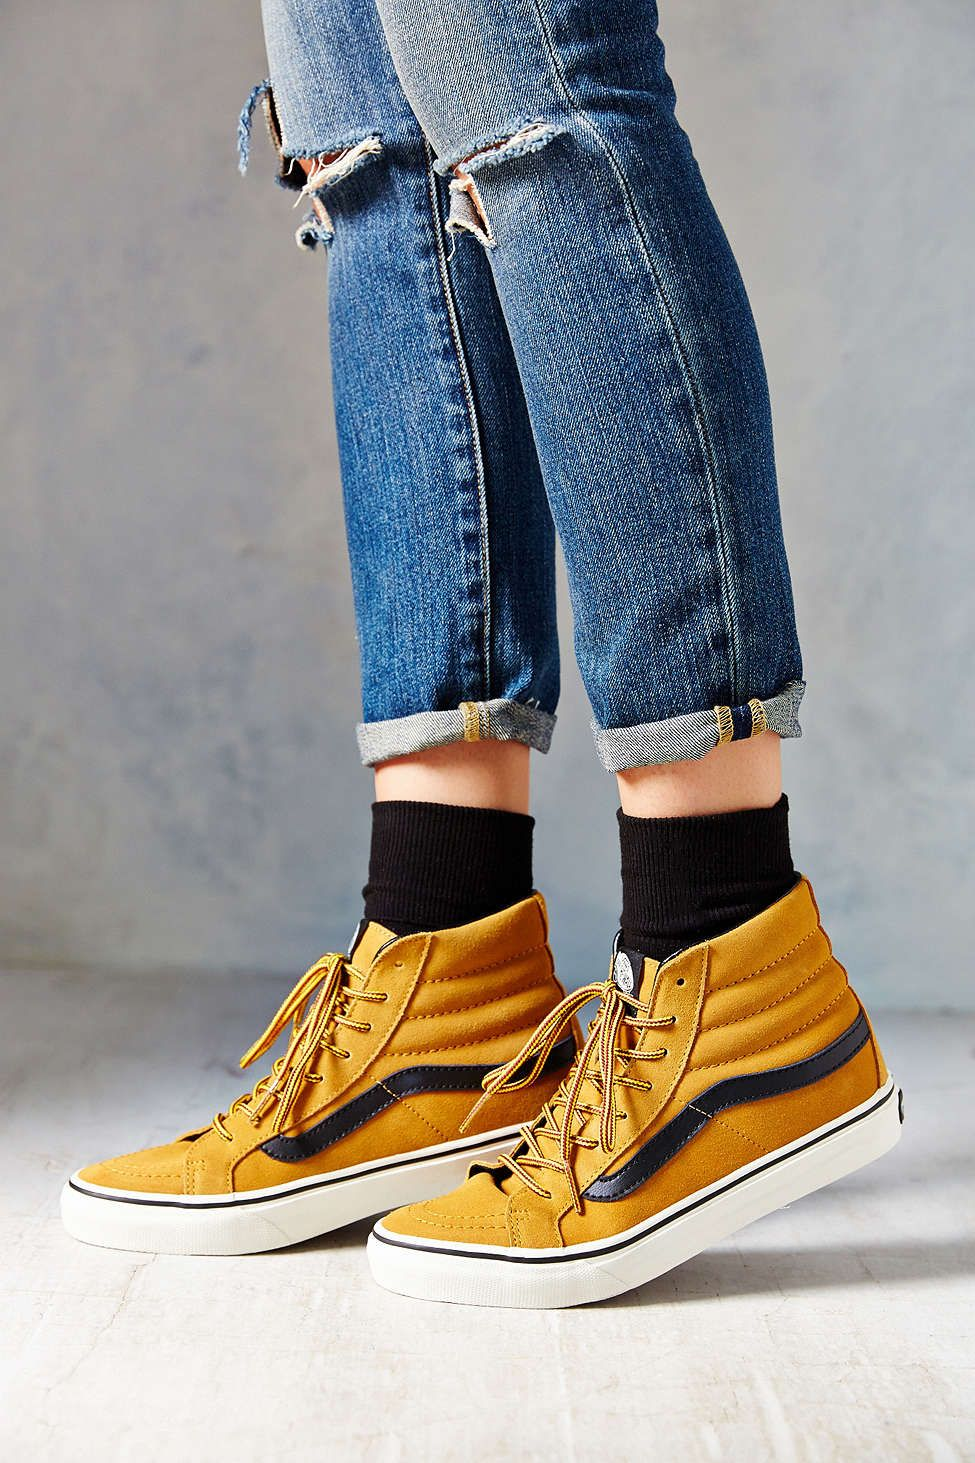 77ee957c0a789f Vans Sk8-Hi Slim Hiker Women s High-Top Sneaker